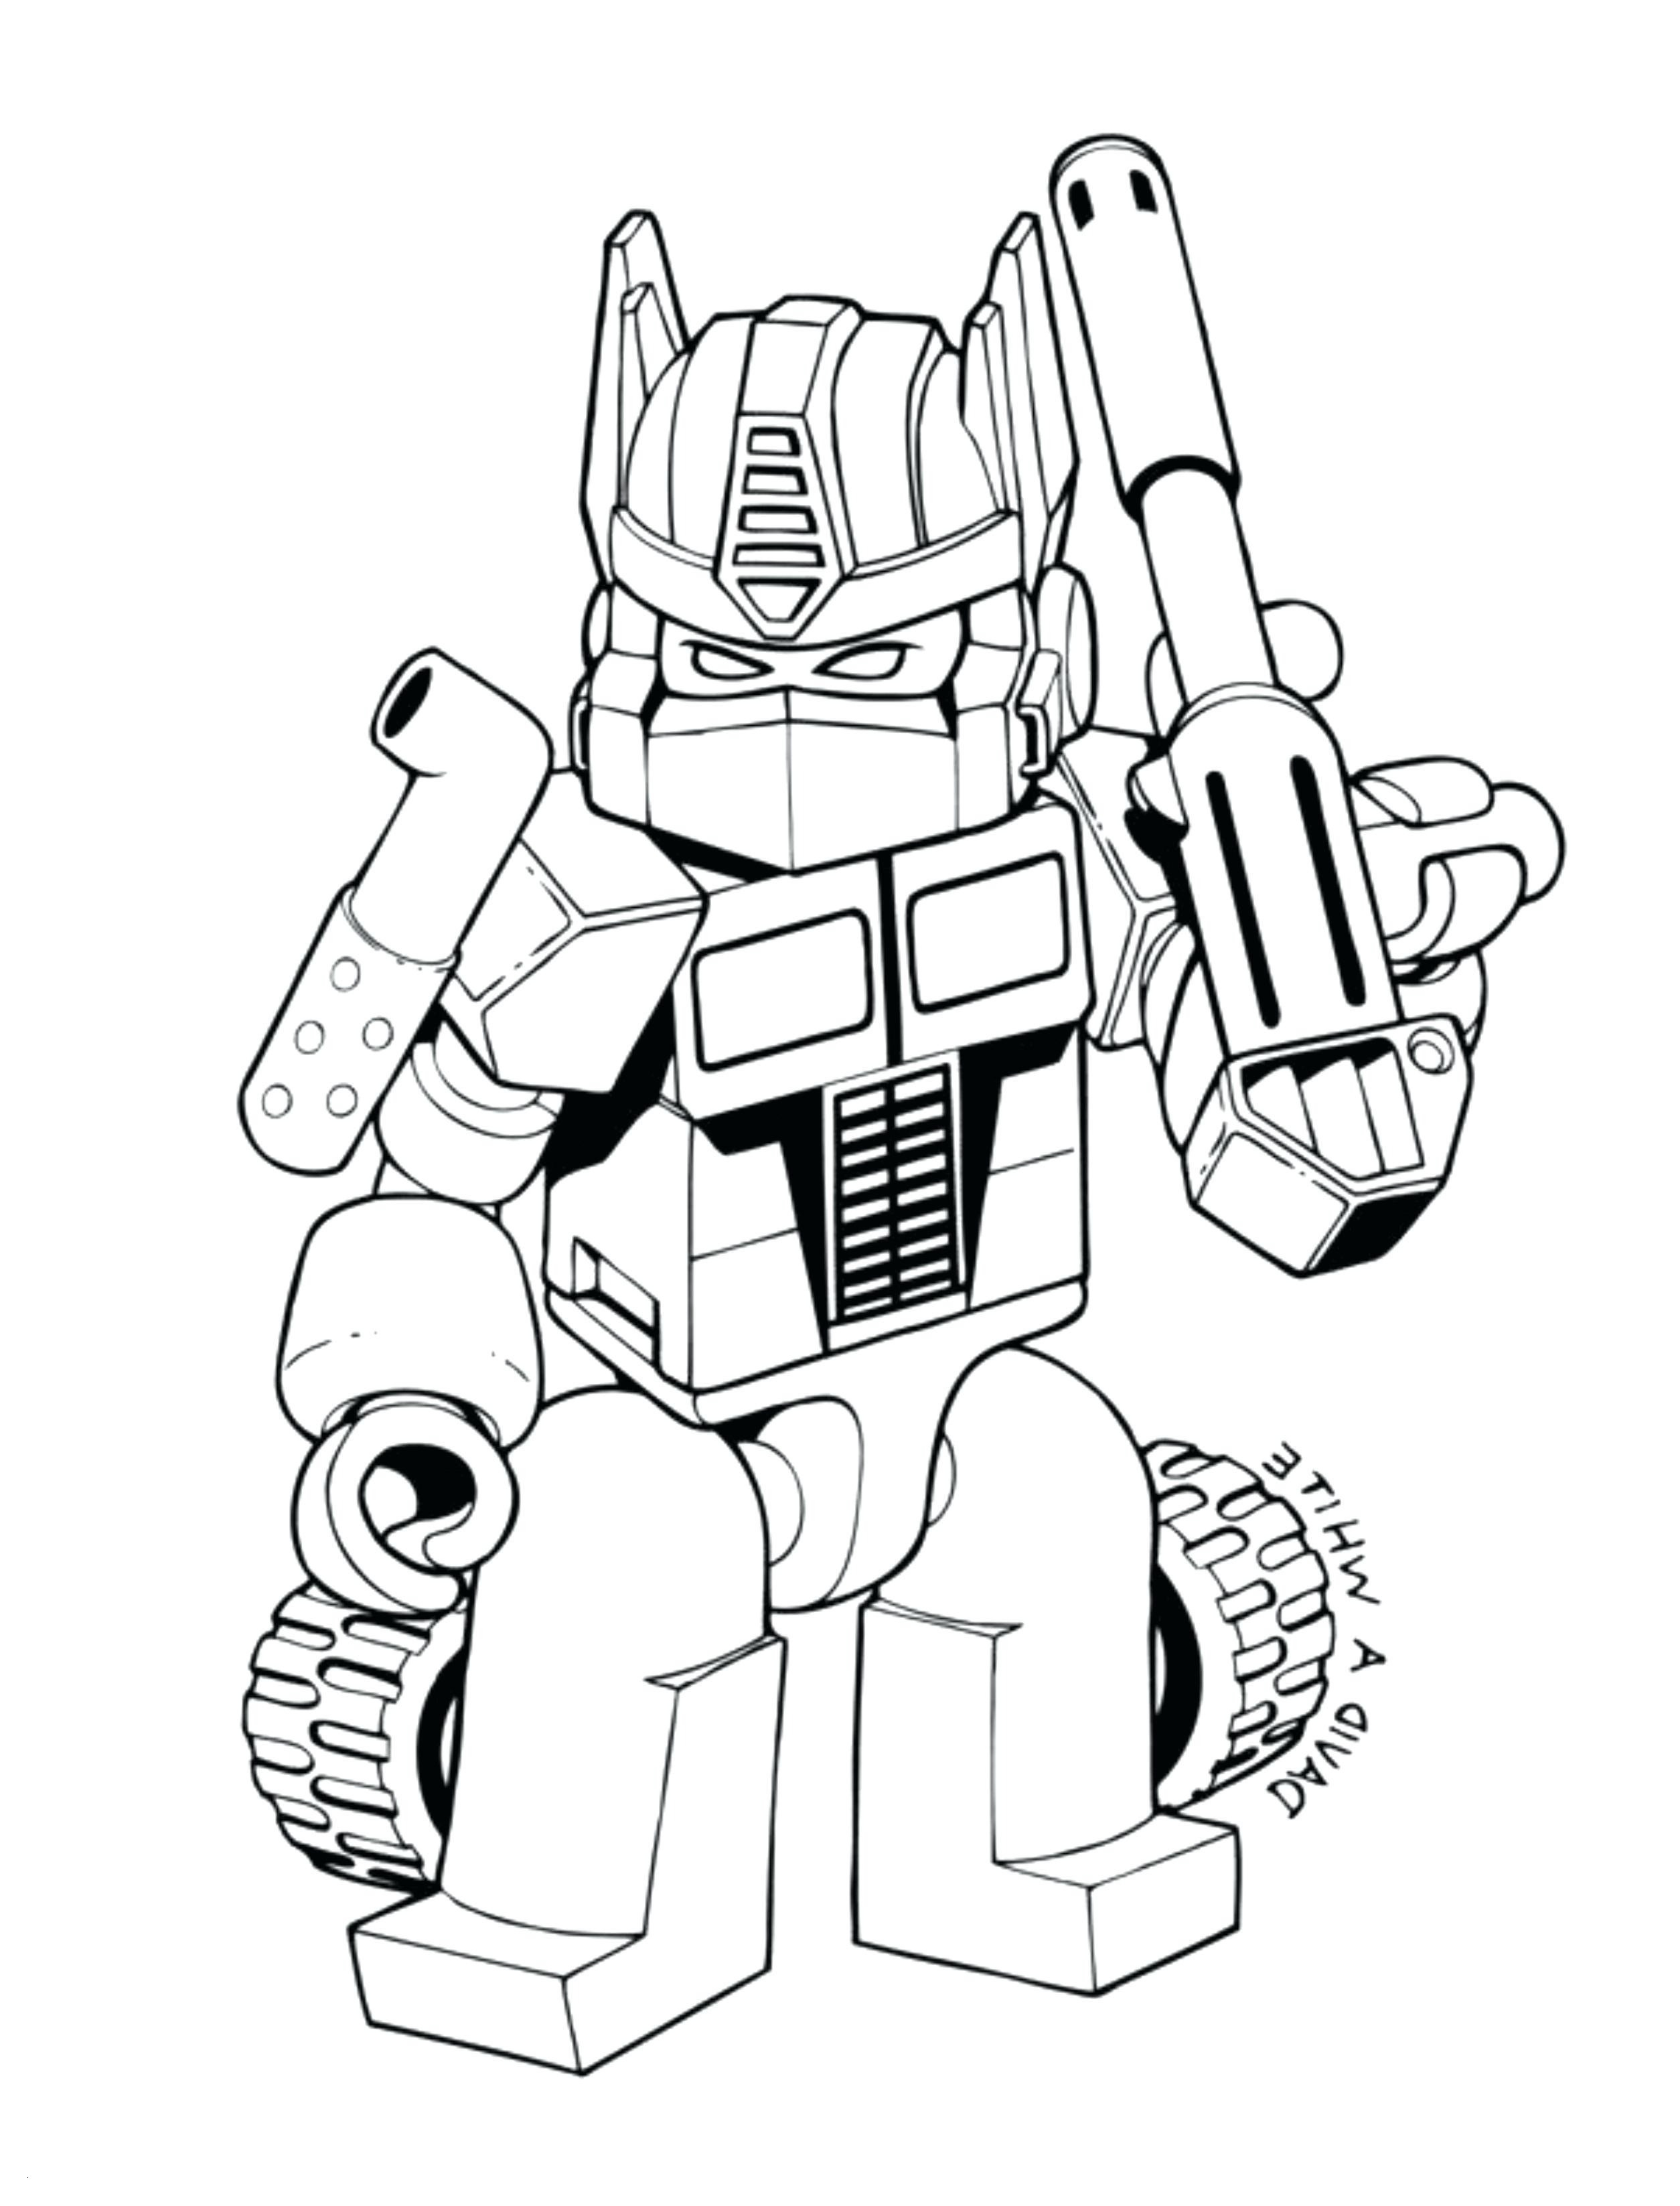 bumblebee transformer coloring pages printable Collection-Bumblebee Transformer Coloring Pages Coloring Pages Coloring Pages Einzigartig Transformers Ausmalbilder Bumblebee 14-h